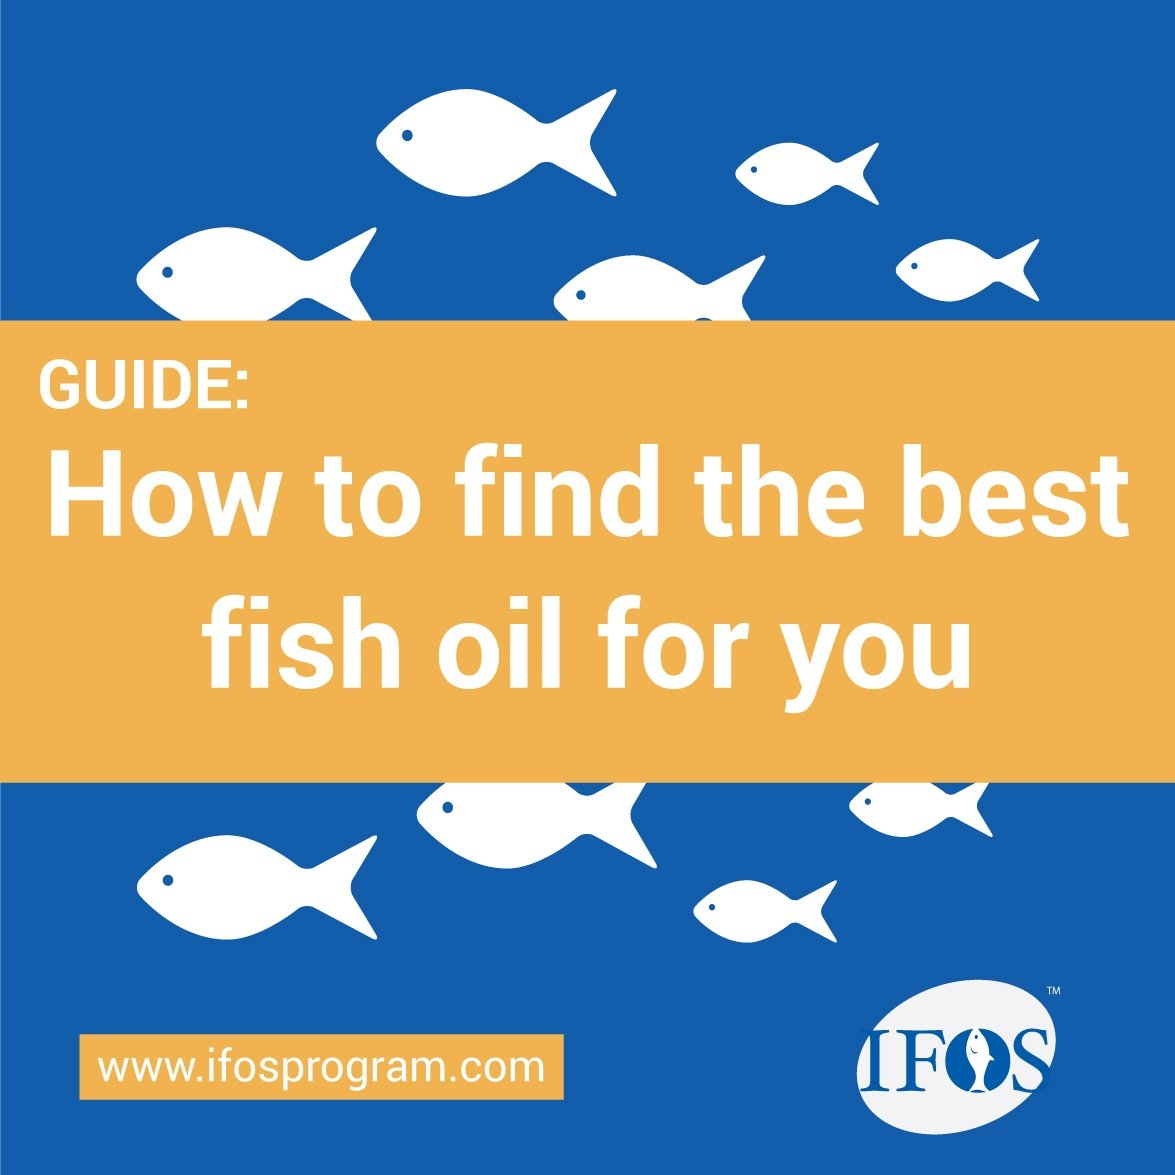 IFOS-CTA-How-to-find-best-fish-oil-for-you.jpg